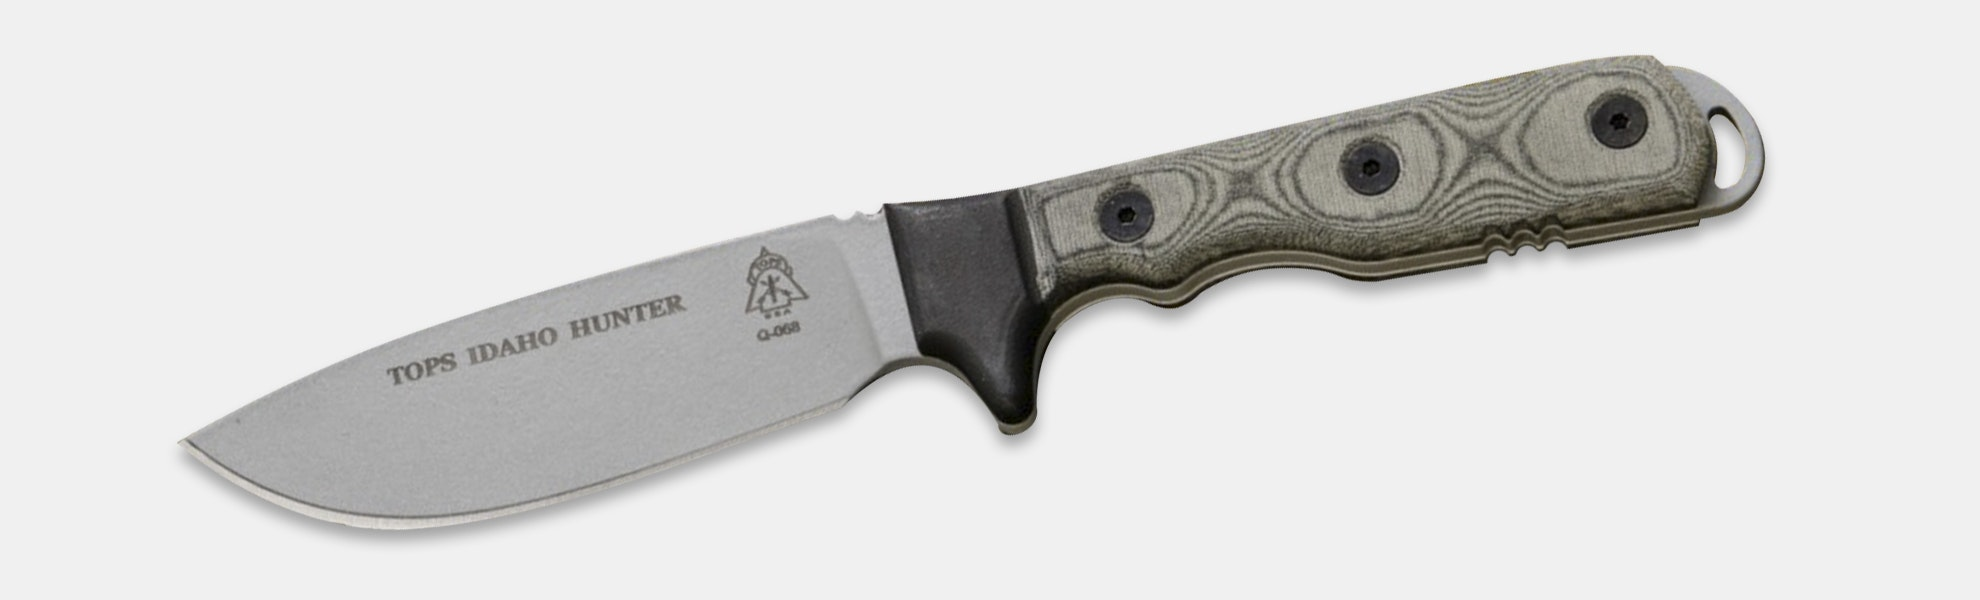 TOPS Knives: Idaho Hunter Fixed Blade Knife